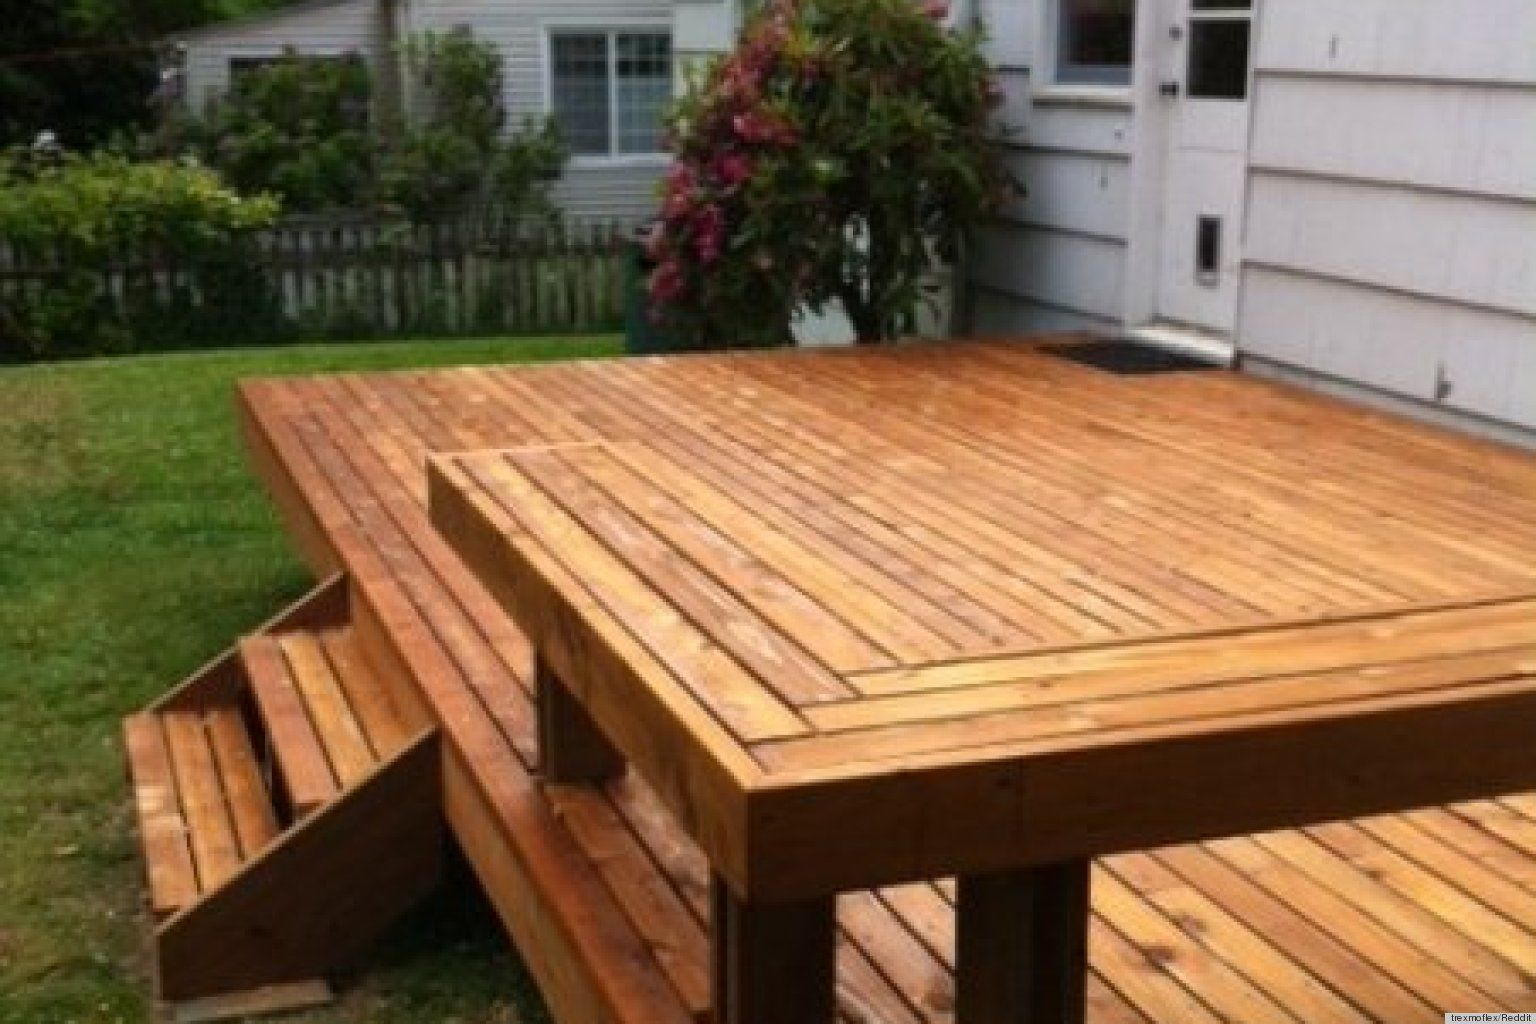 Deck Idea Indicated On Reddit That The Diy Project Cost Them 2500 And A Of Days To Finish